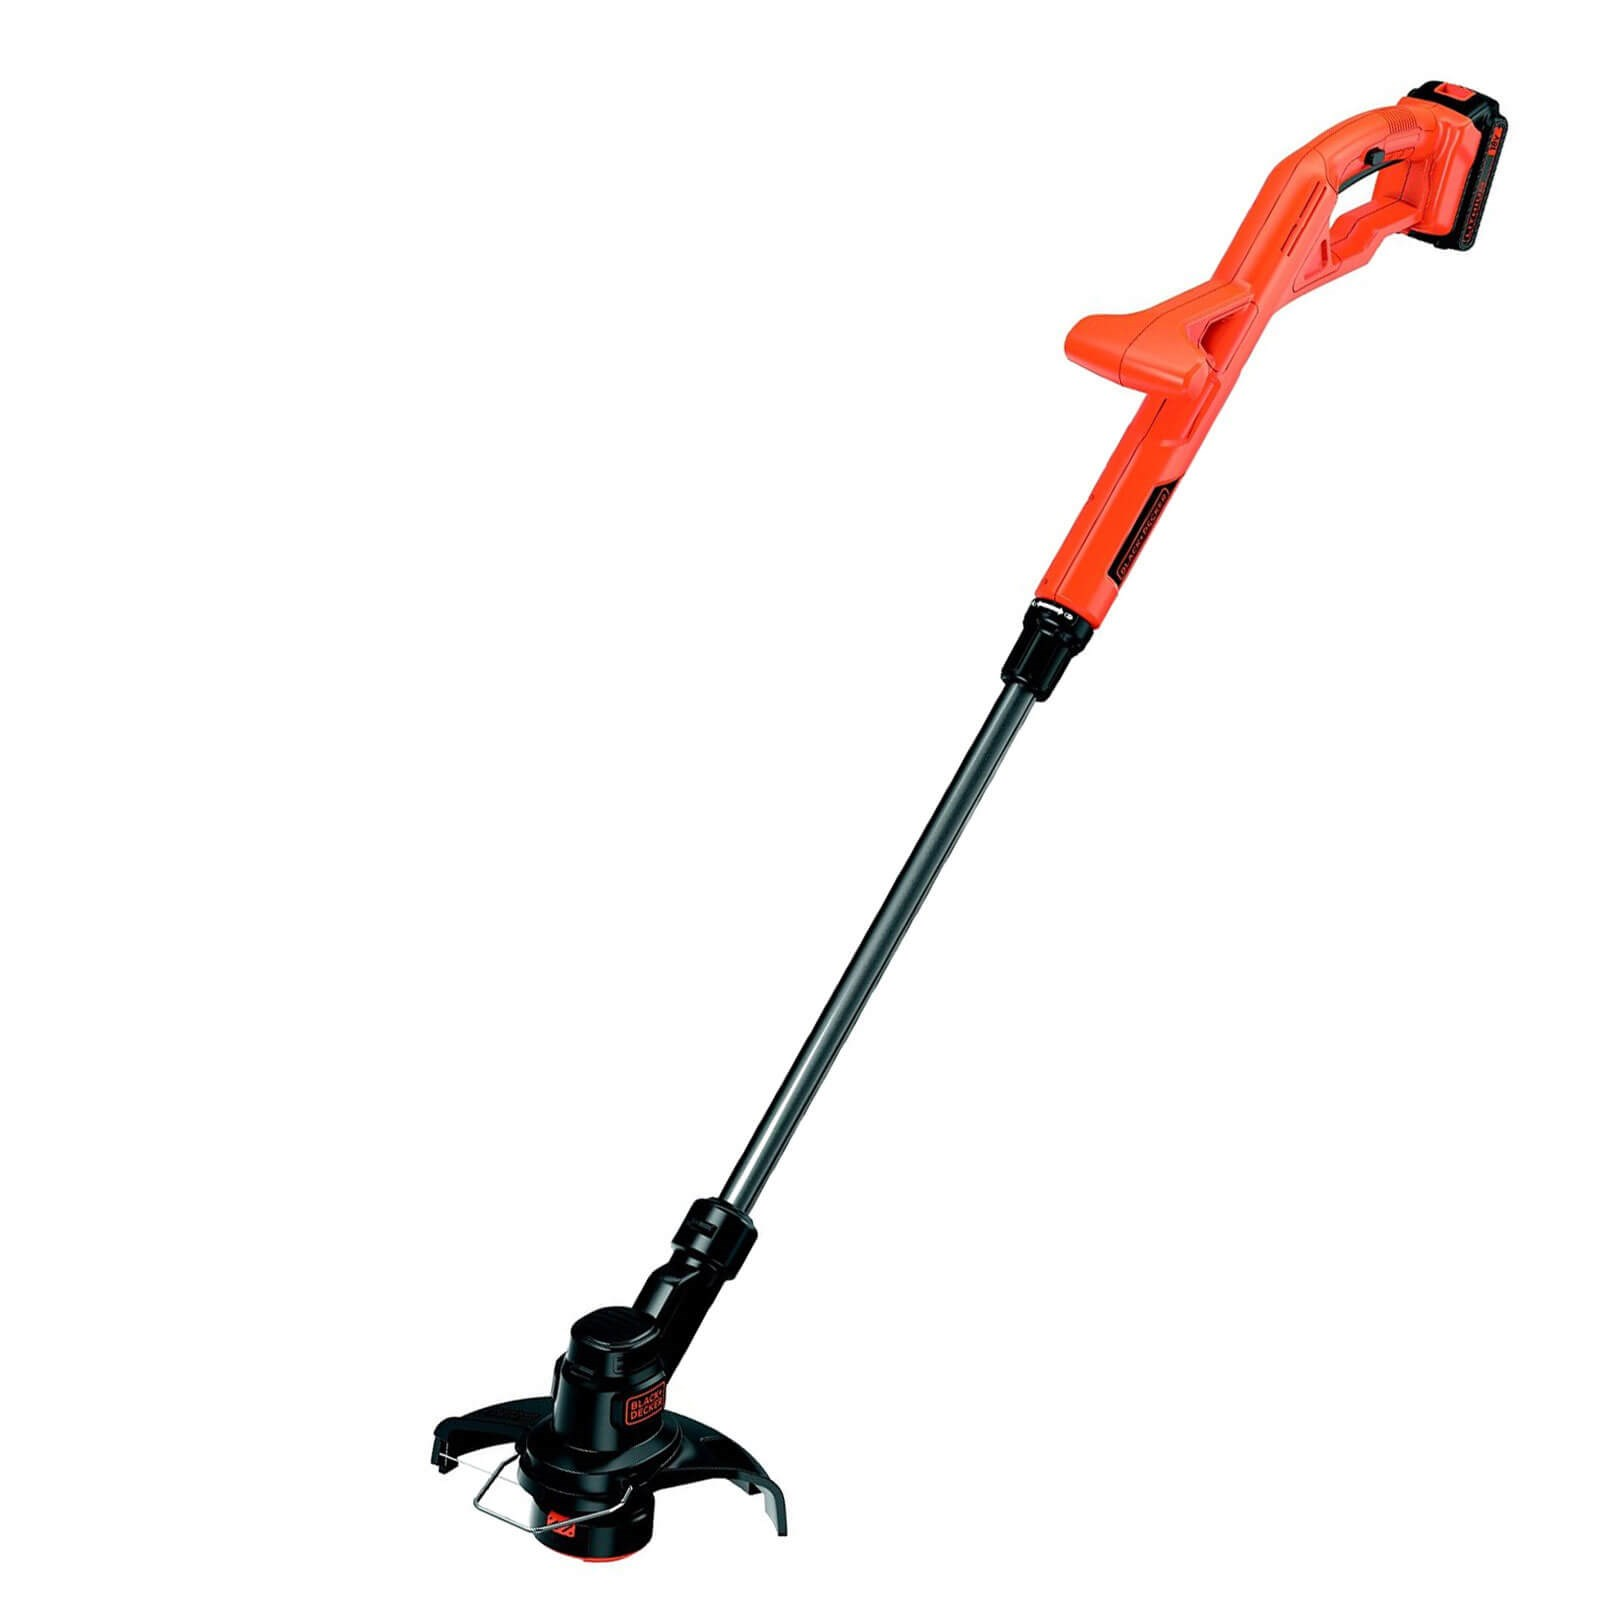 Black and Decker ST1823 18v Cordless Grass Trimmer 250mm